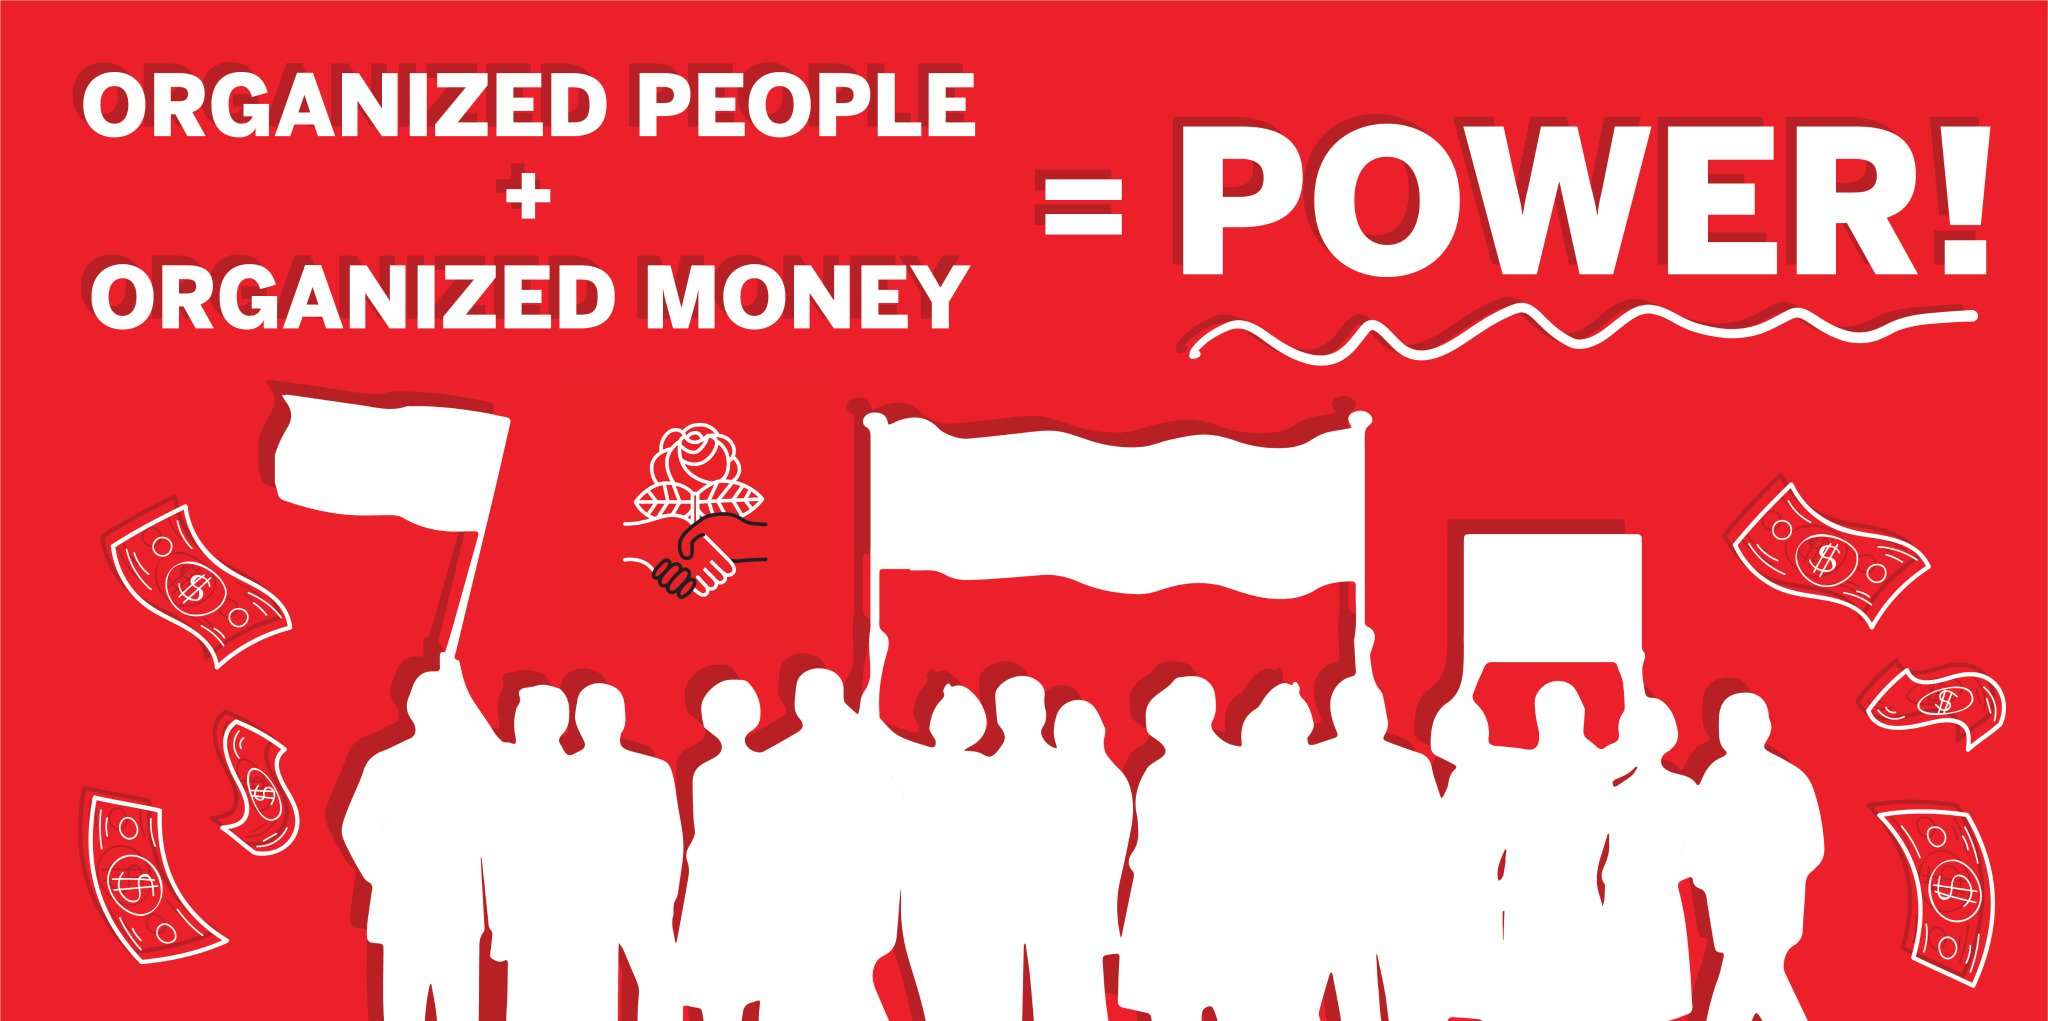 "Text: ""ORGANIZED PEOPLE + ORGANIZED MONEY = POWER!"" above silhouettes of people at demonstration holding signs, flag, banner;  dollar bills in background."